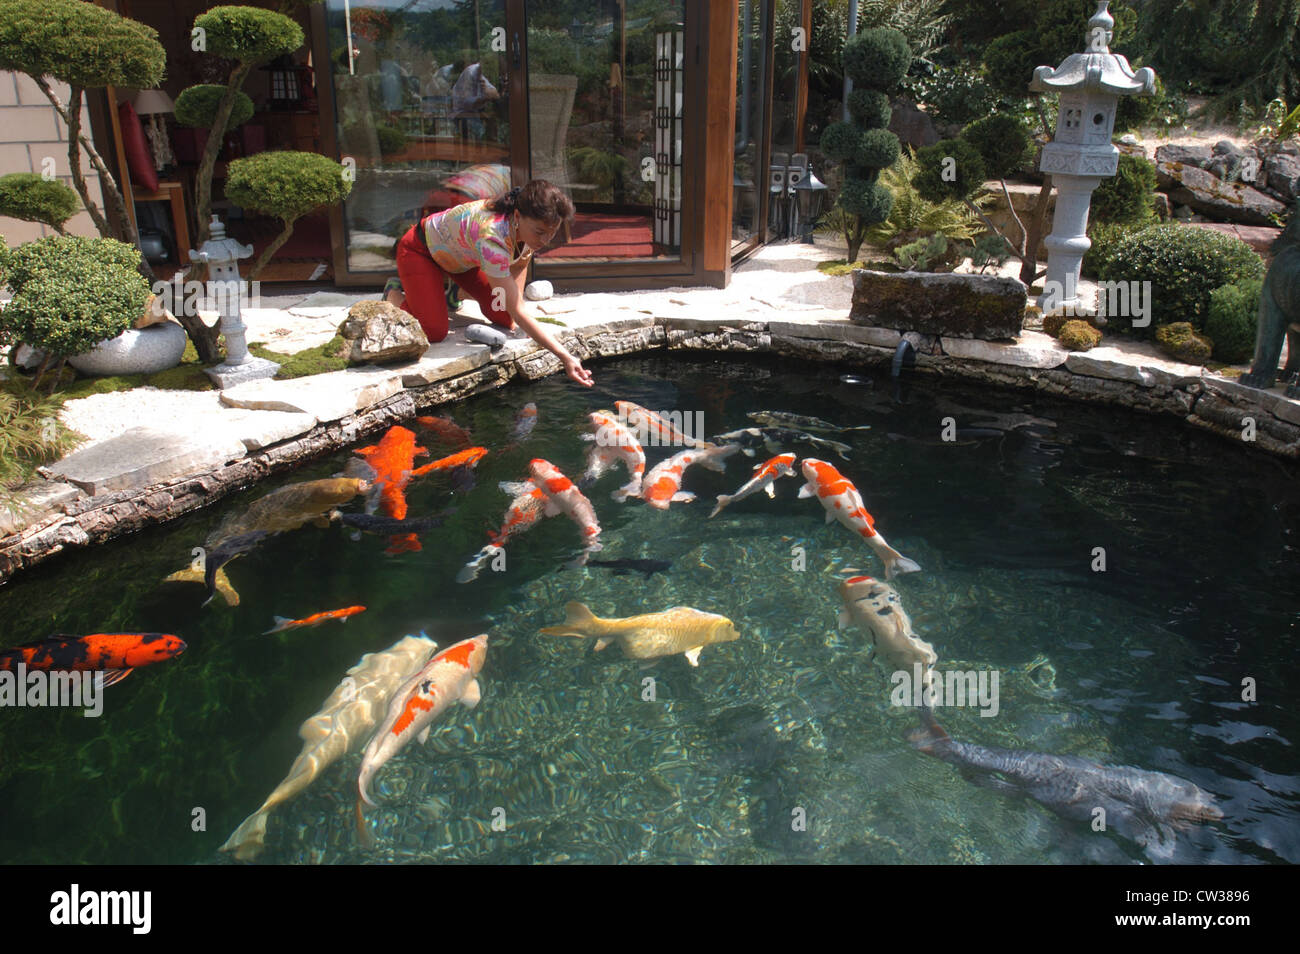 Koi pond in reigoldswil switzerland stock photo royalty for Ornamental fish pond maintenance